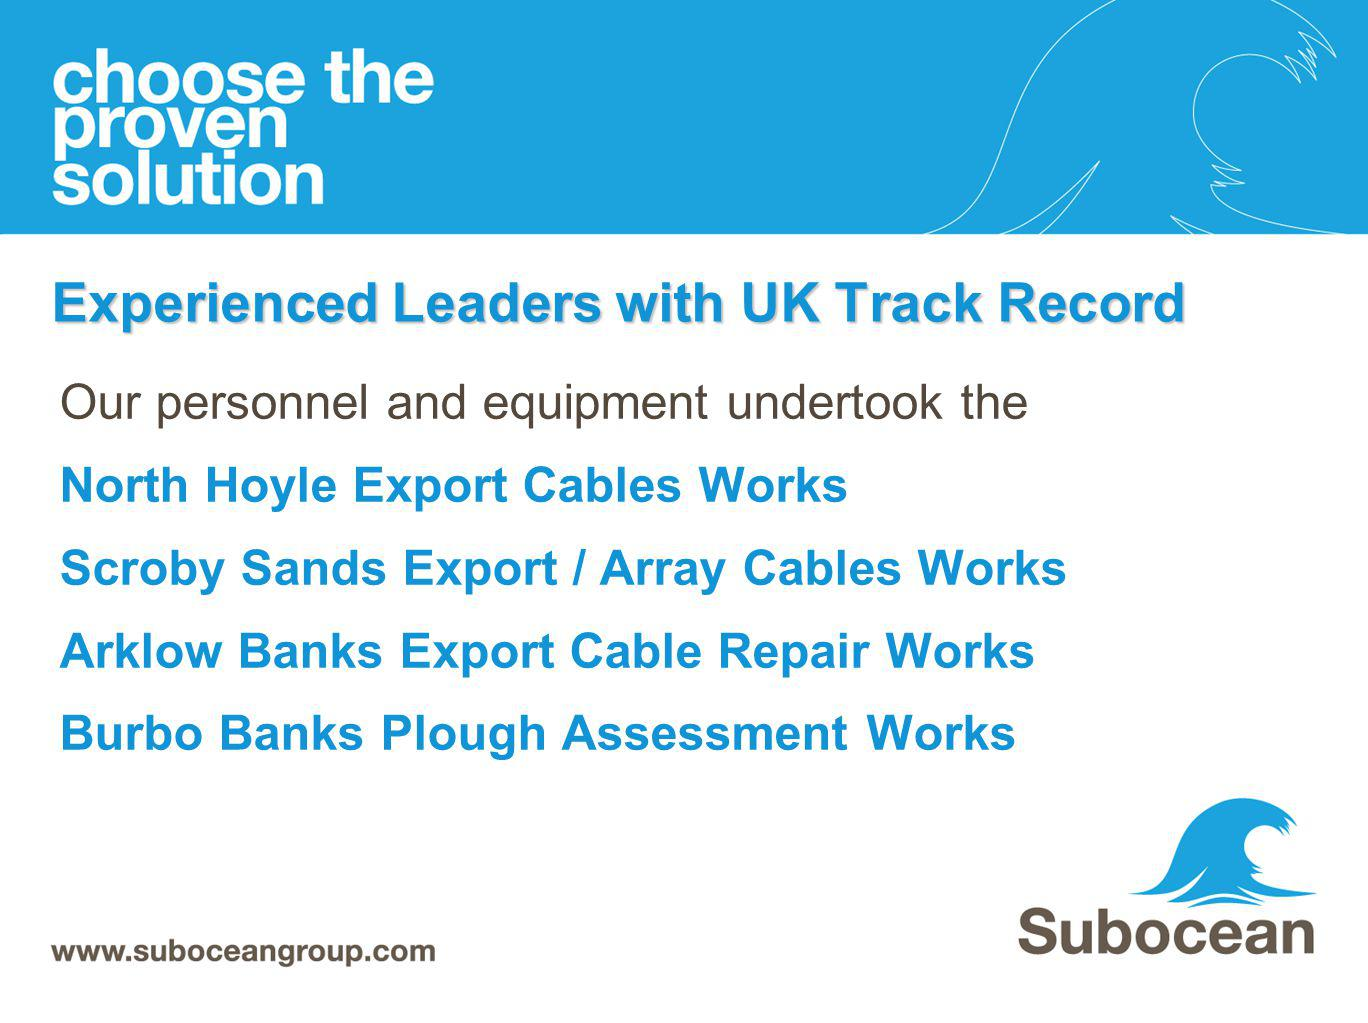 Experienced Leaders with UK Track Record Our personnel and equipment undertook the North Hoyle Export Cables Works Scroby Sands Export / Array Cables